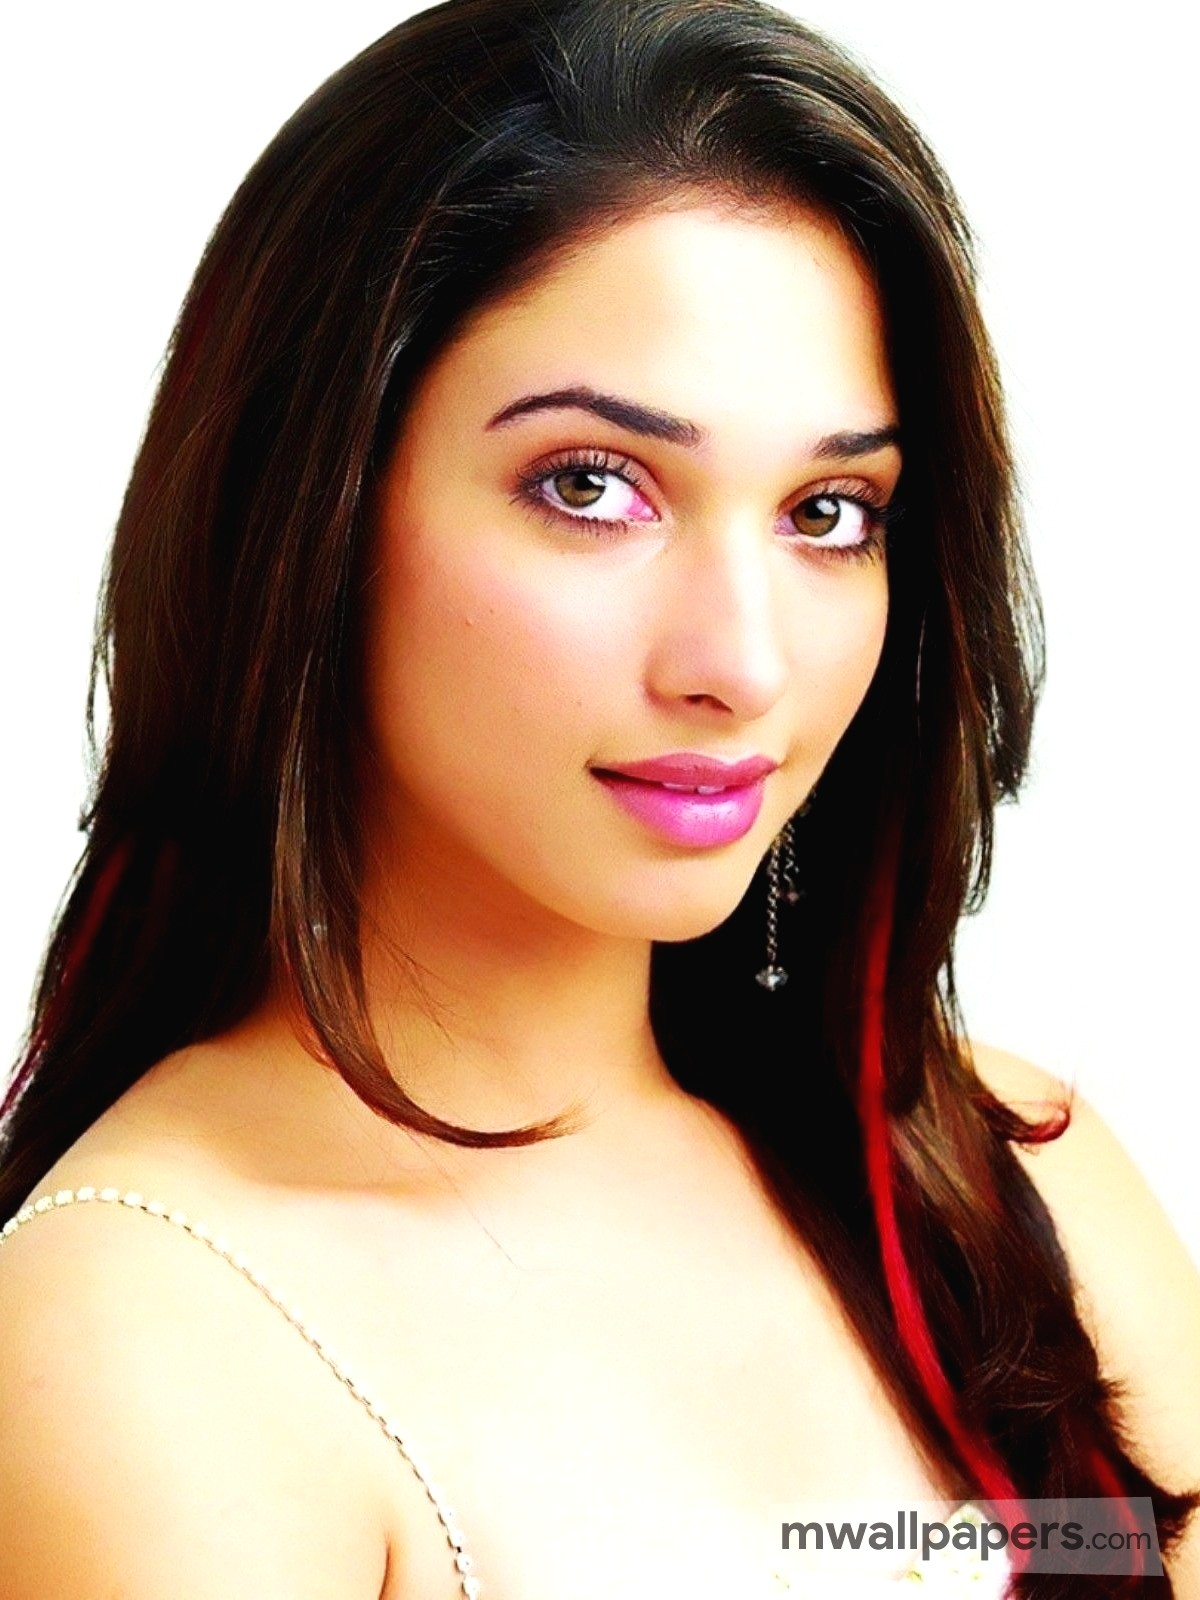 tamanna bhatia wallpaper hd android iphone ipad hd wallpapers